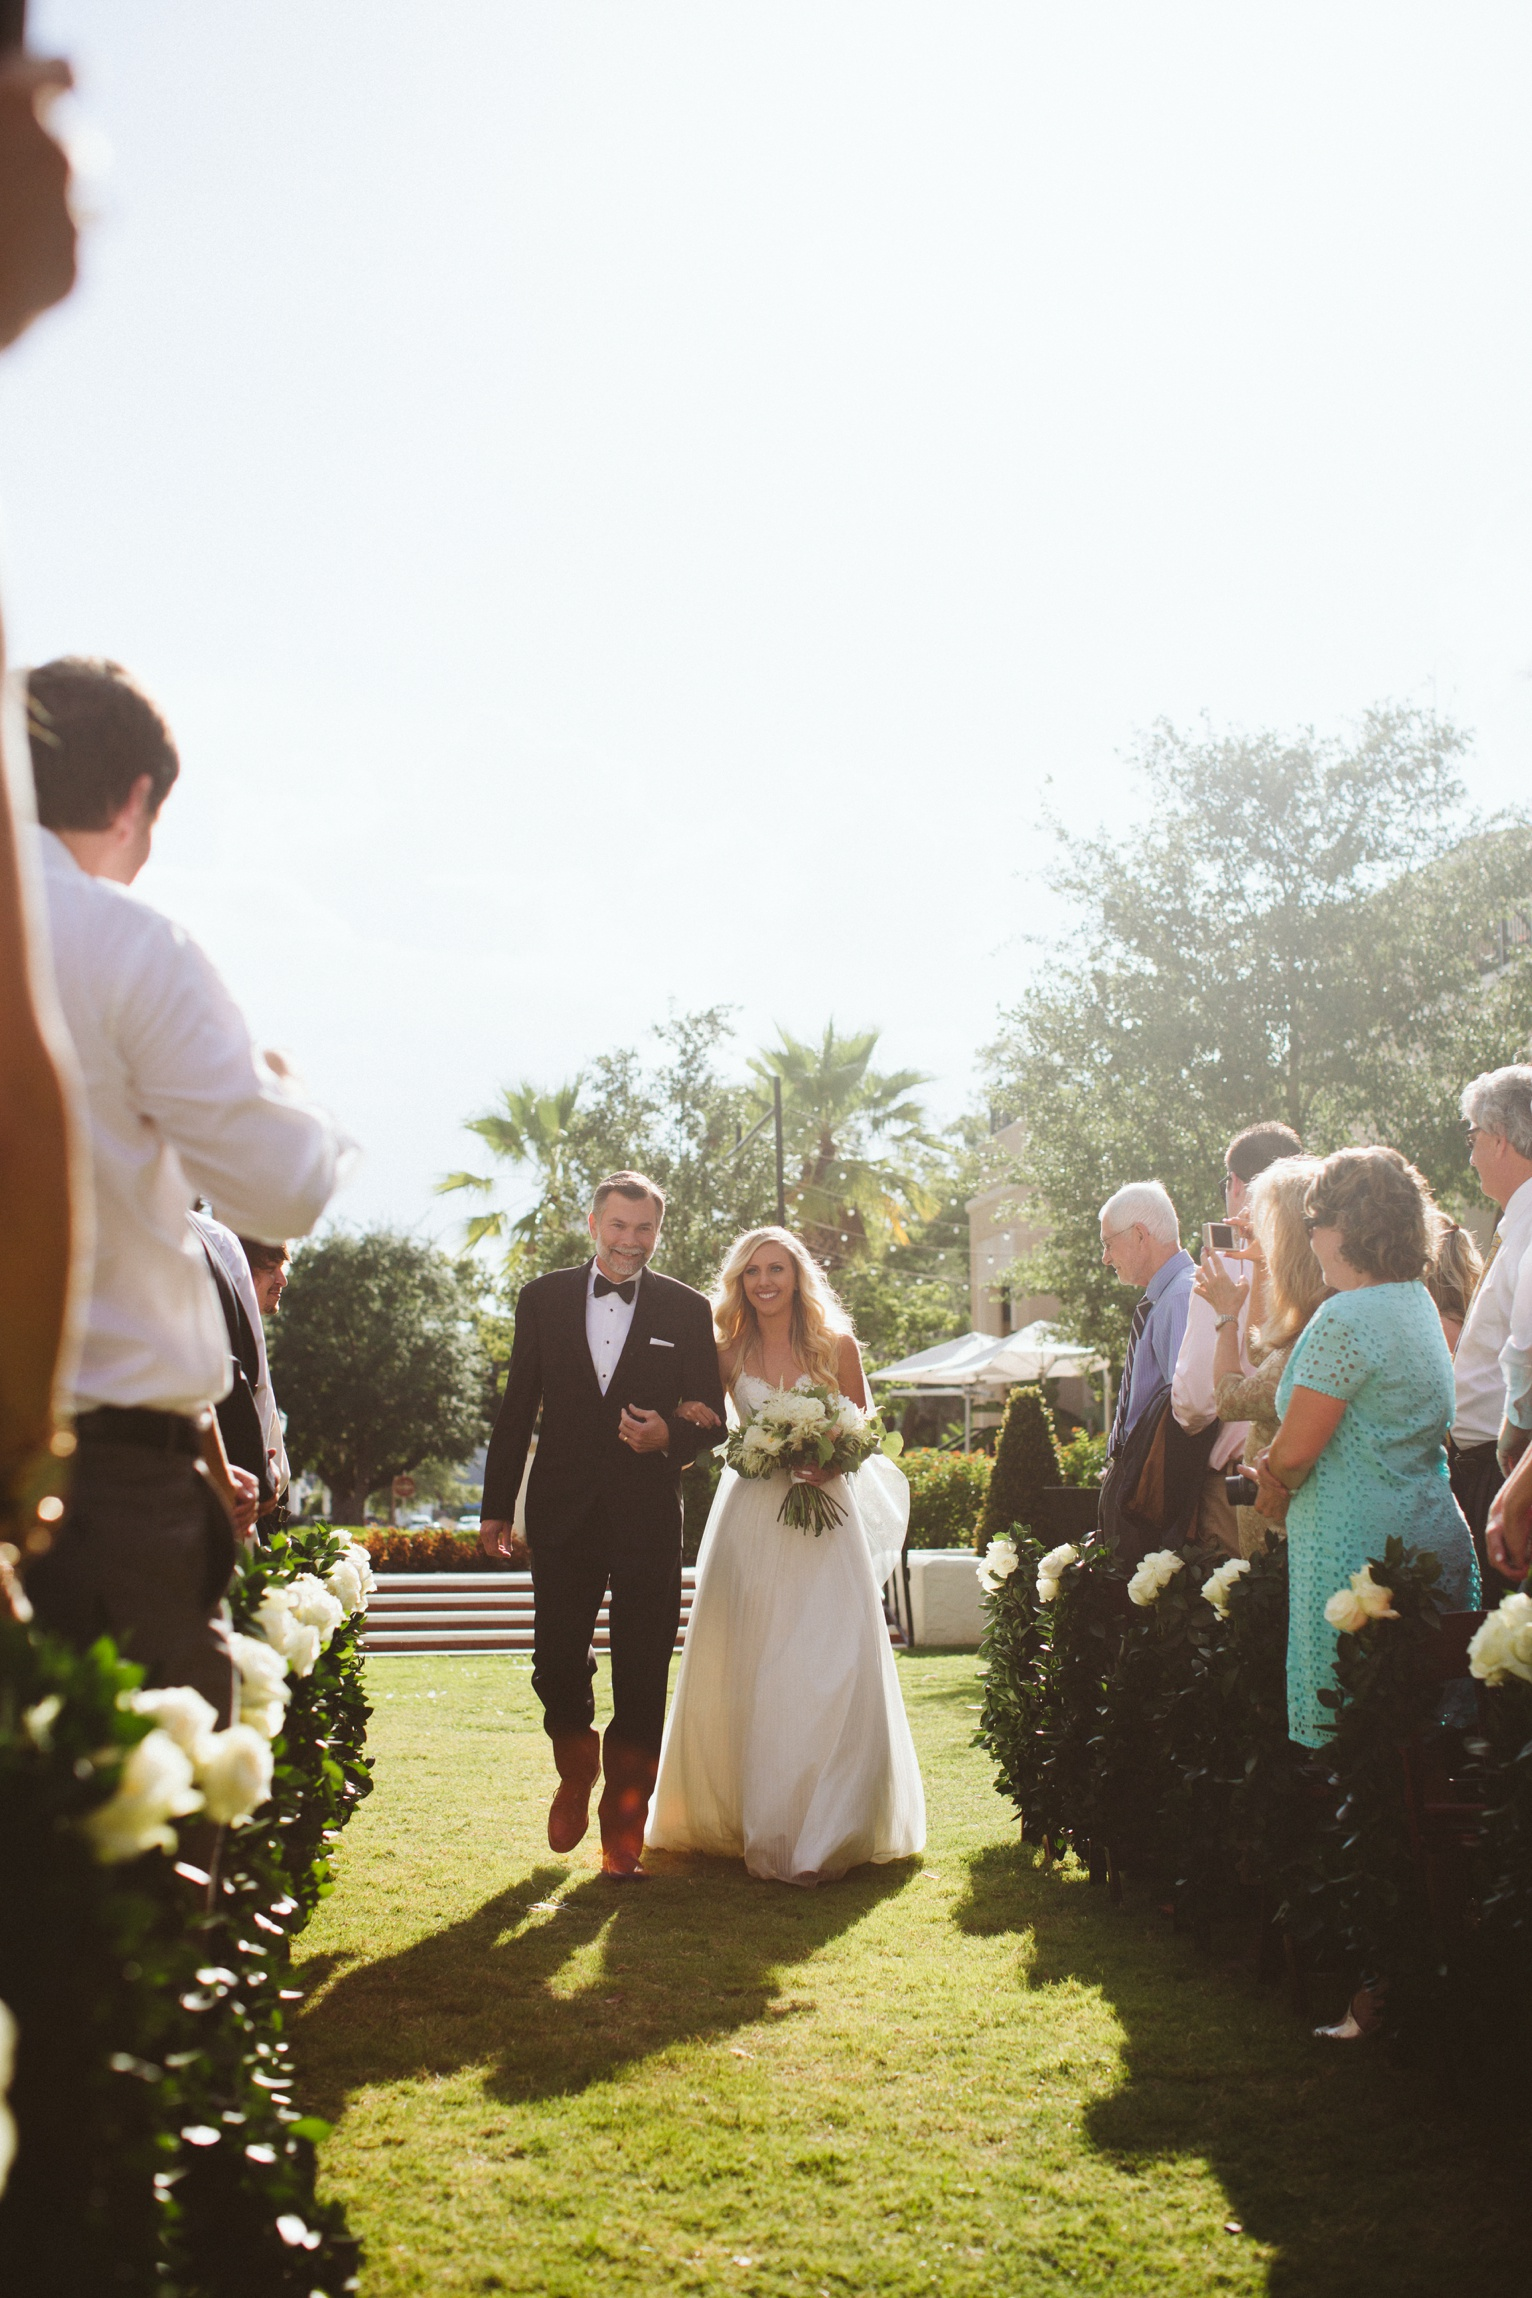 Dreamtownco.com_blog_Jordan&Lindsey_Wedding__0137.jpg